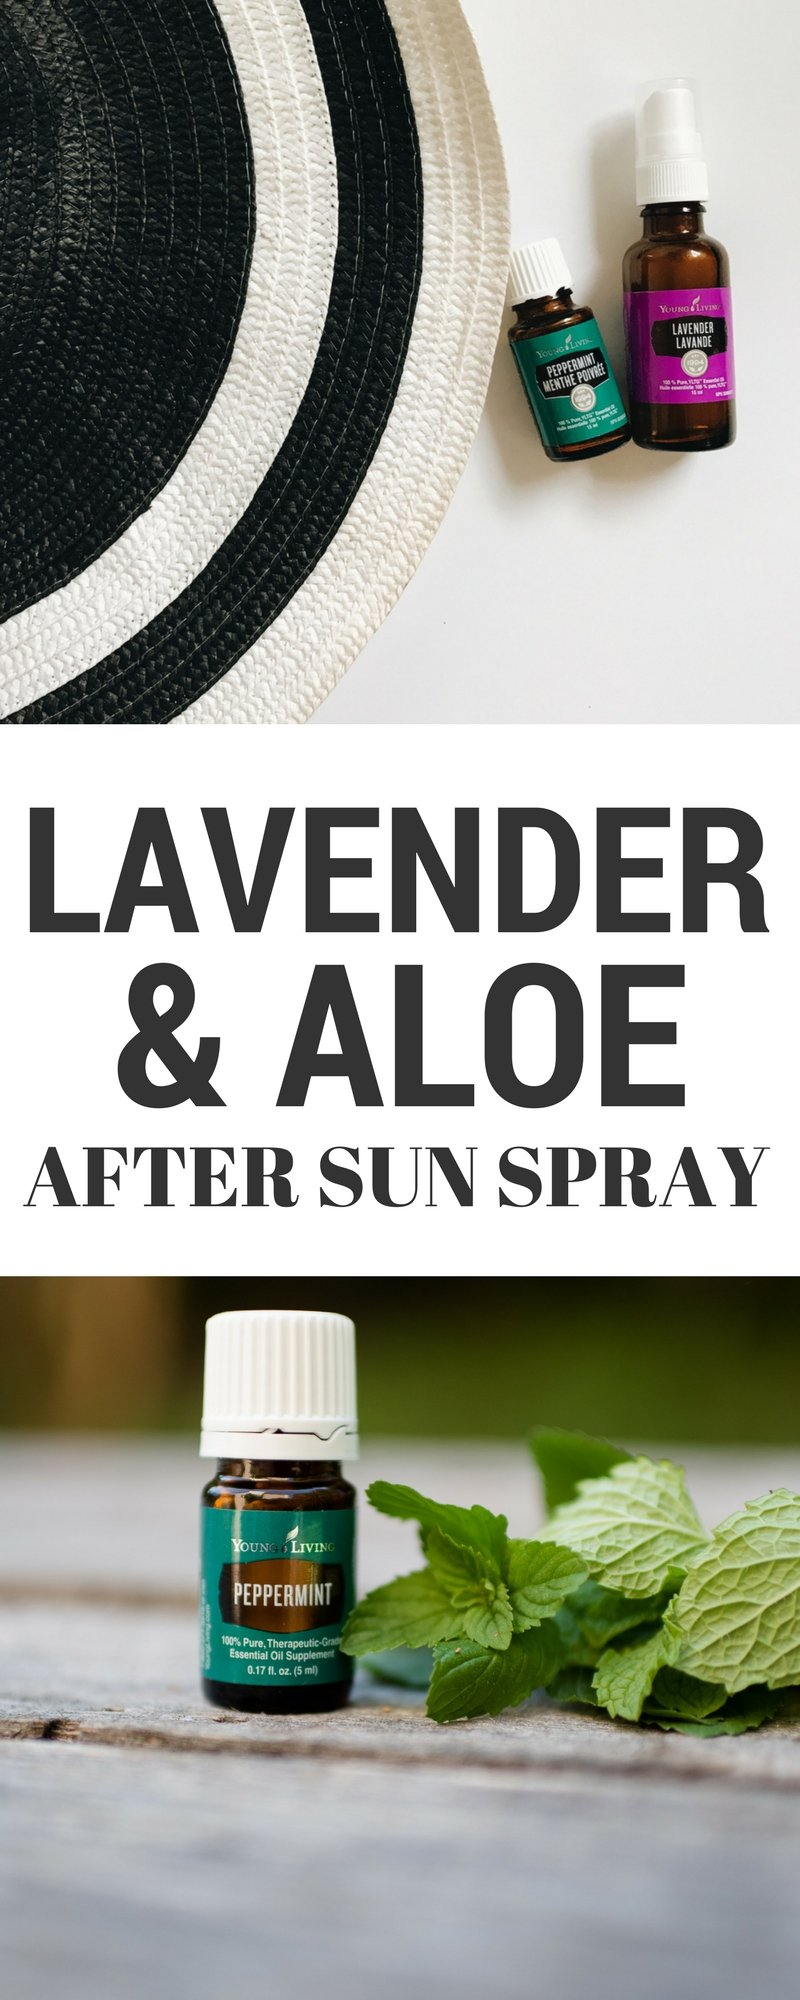 DIY natural lavender and aloe after sun spray with essential oils. Click through to read more, or pin to save for later!